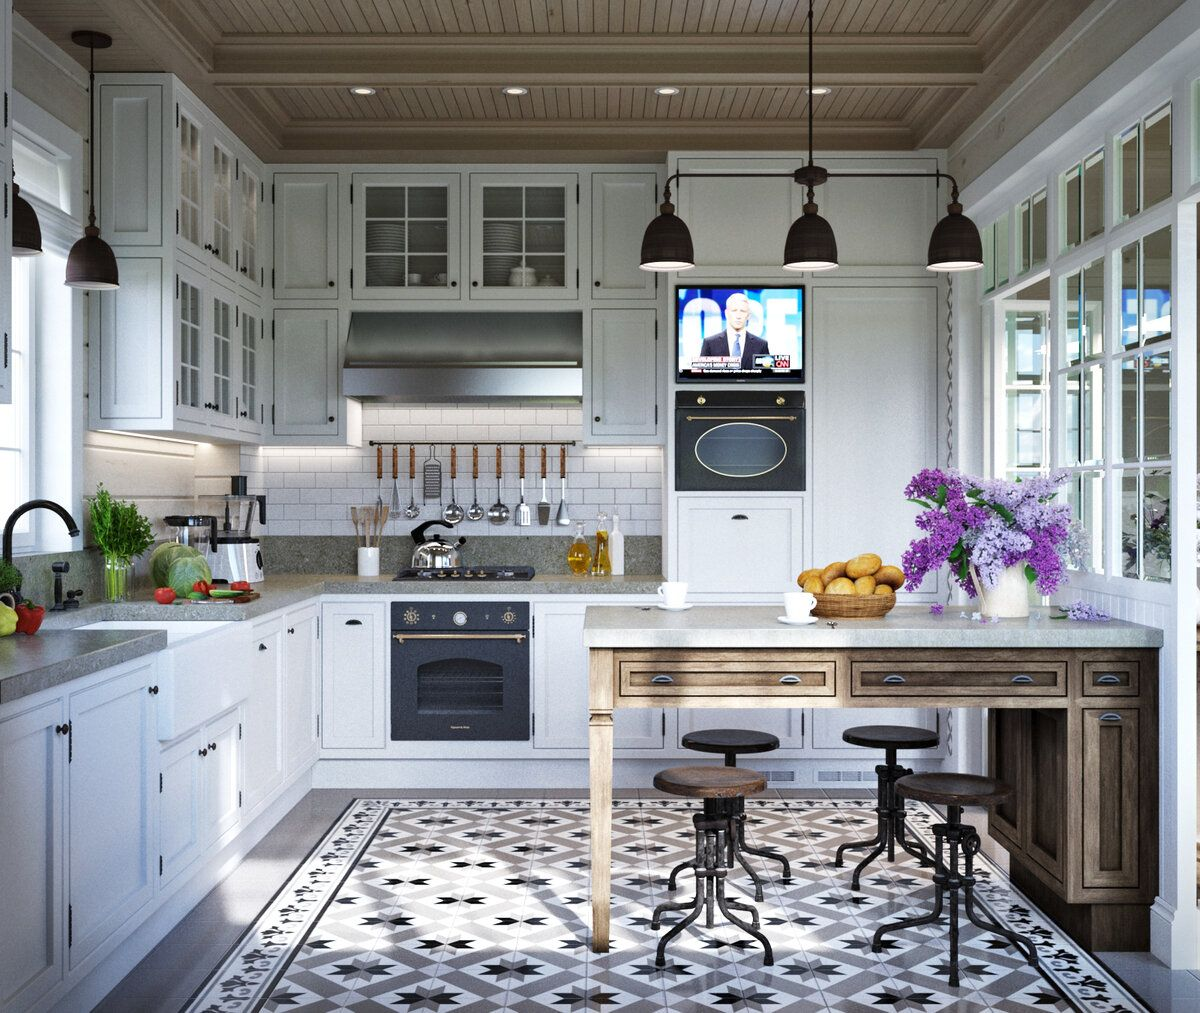 Marvelous combination of colors and materials in the Provence kitchen with black pendant lights over the table